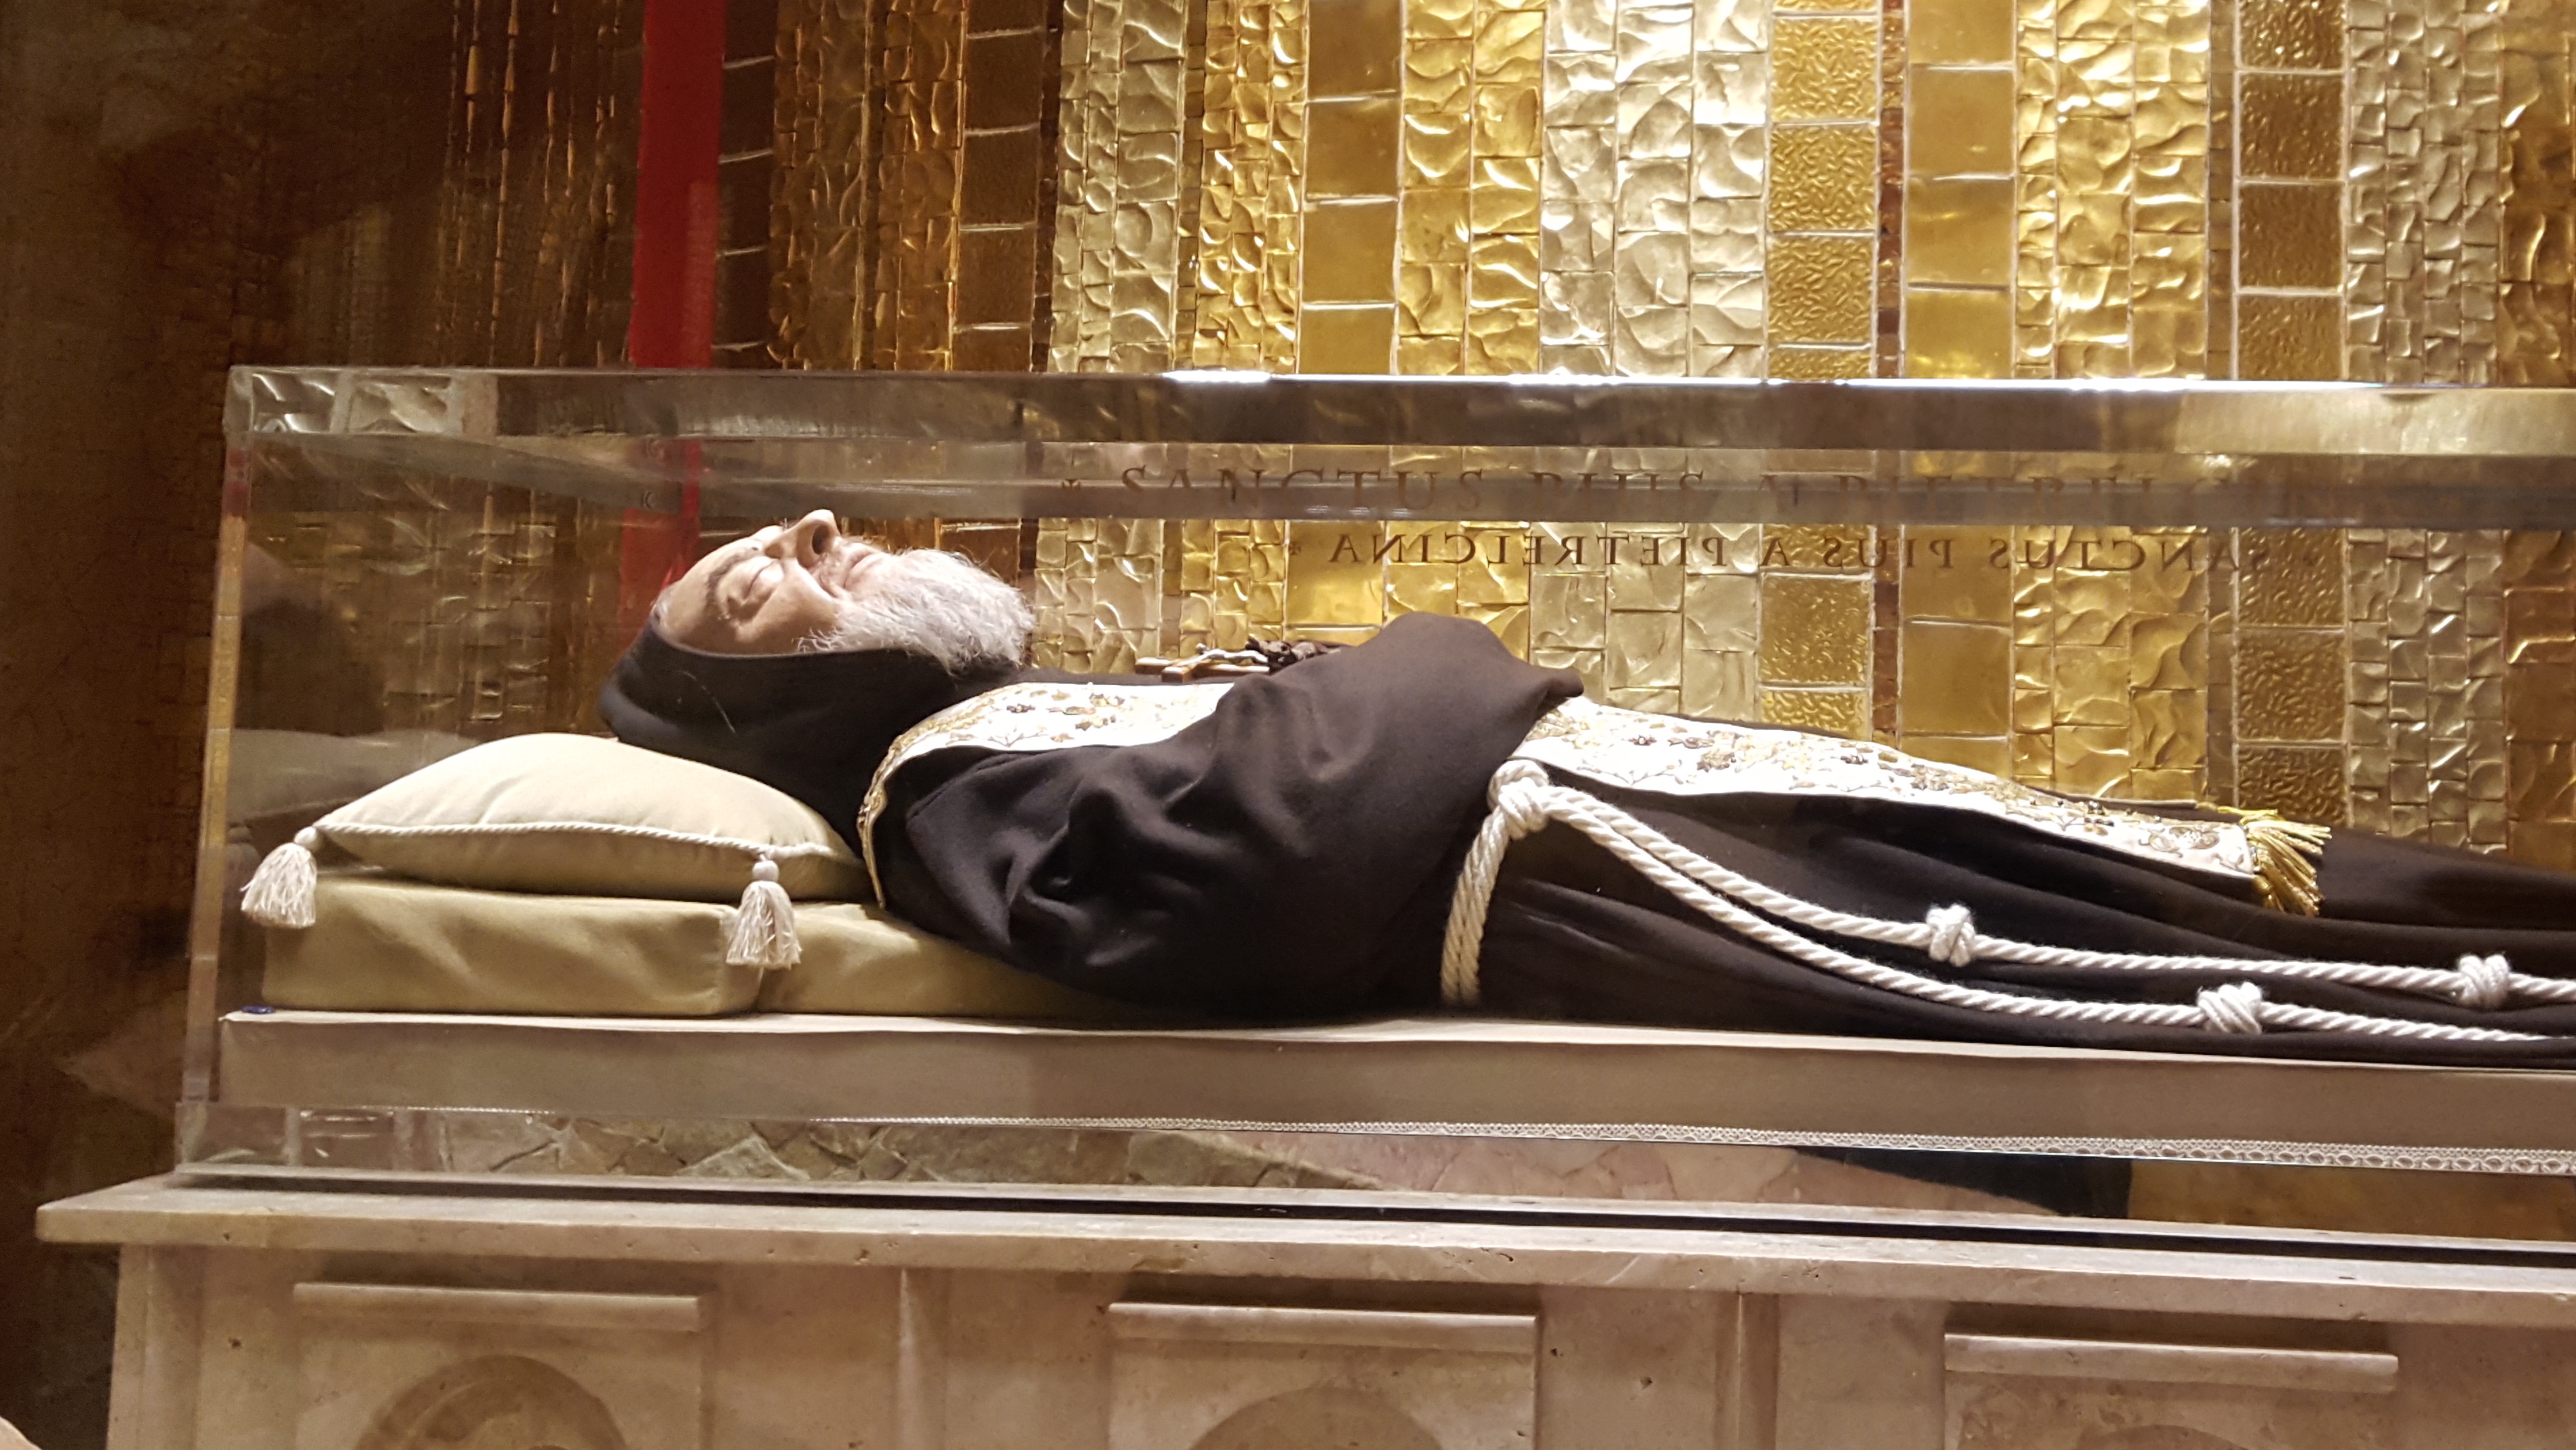 Italy Celebrating St Padre Pio November 2018 Catholic Faith  # Monte Pio Muebles